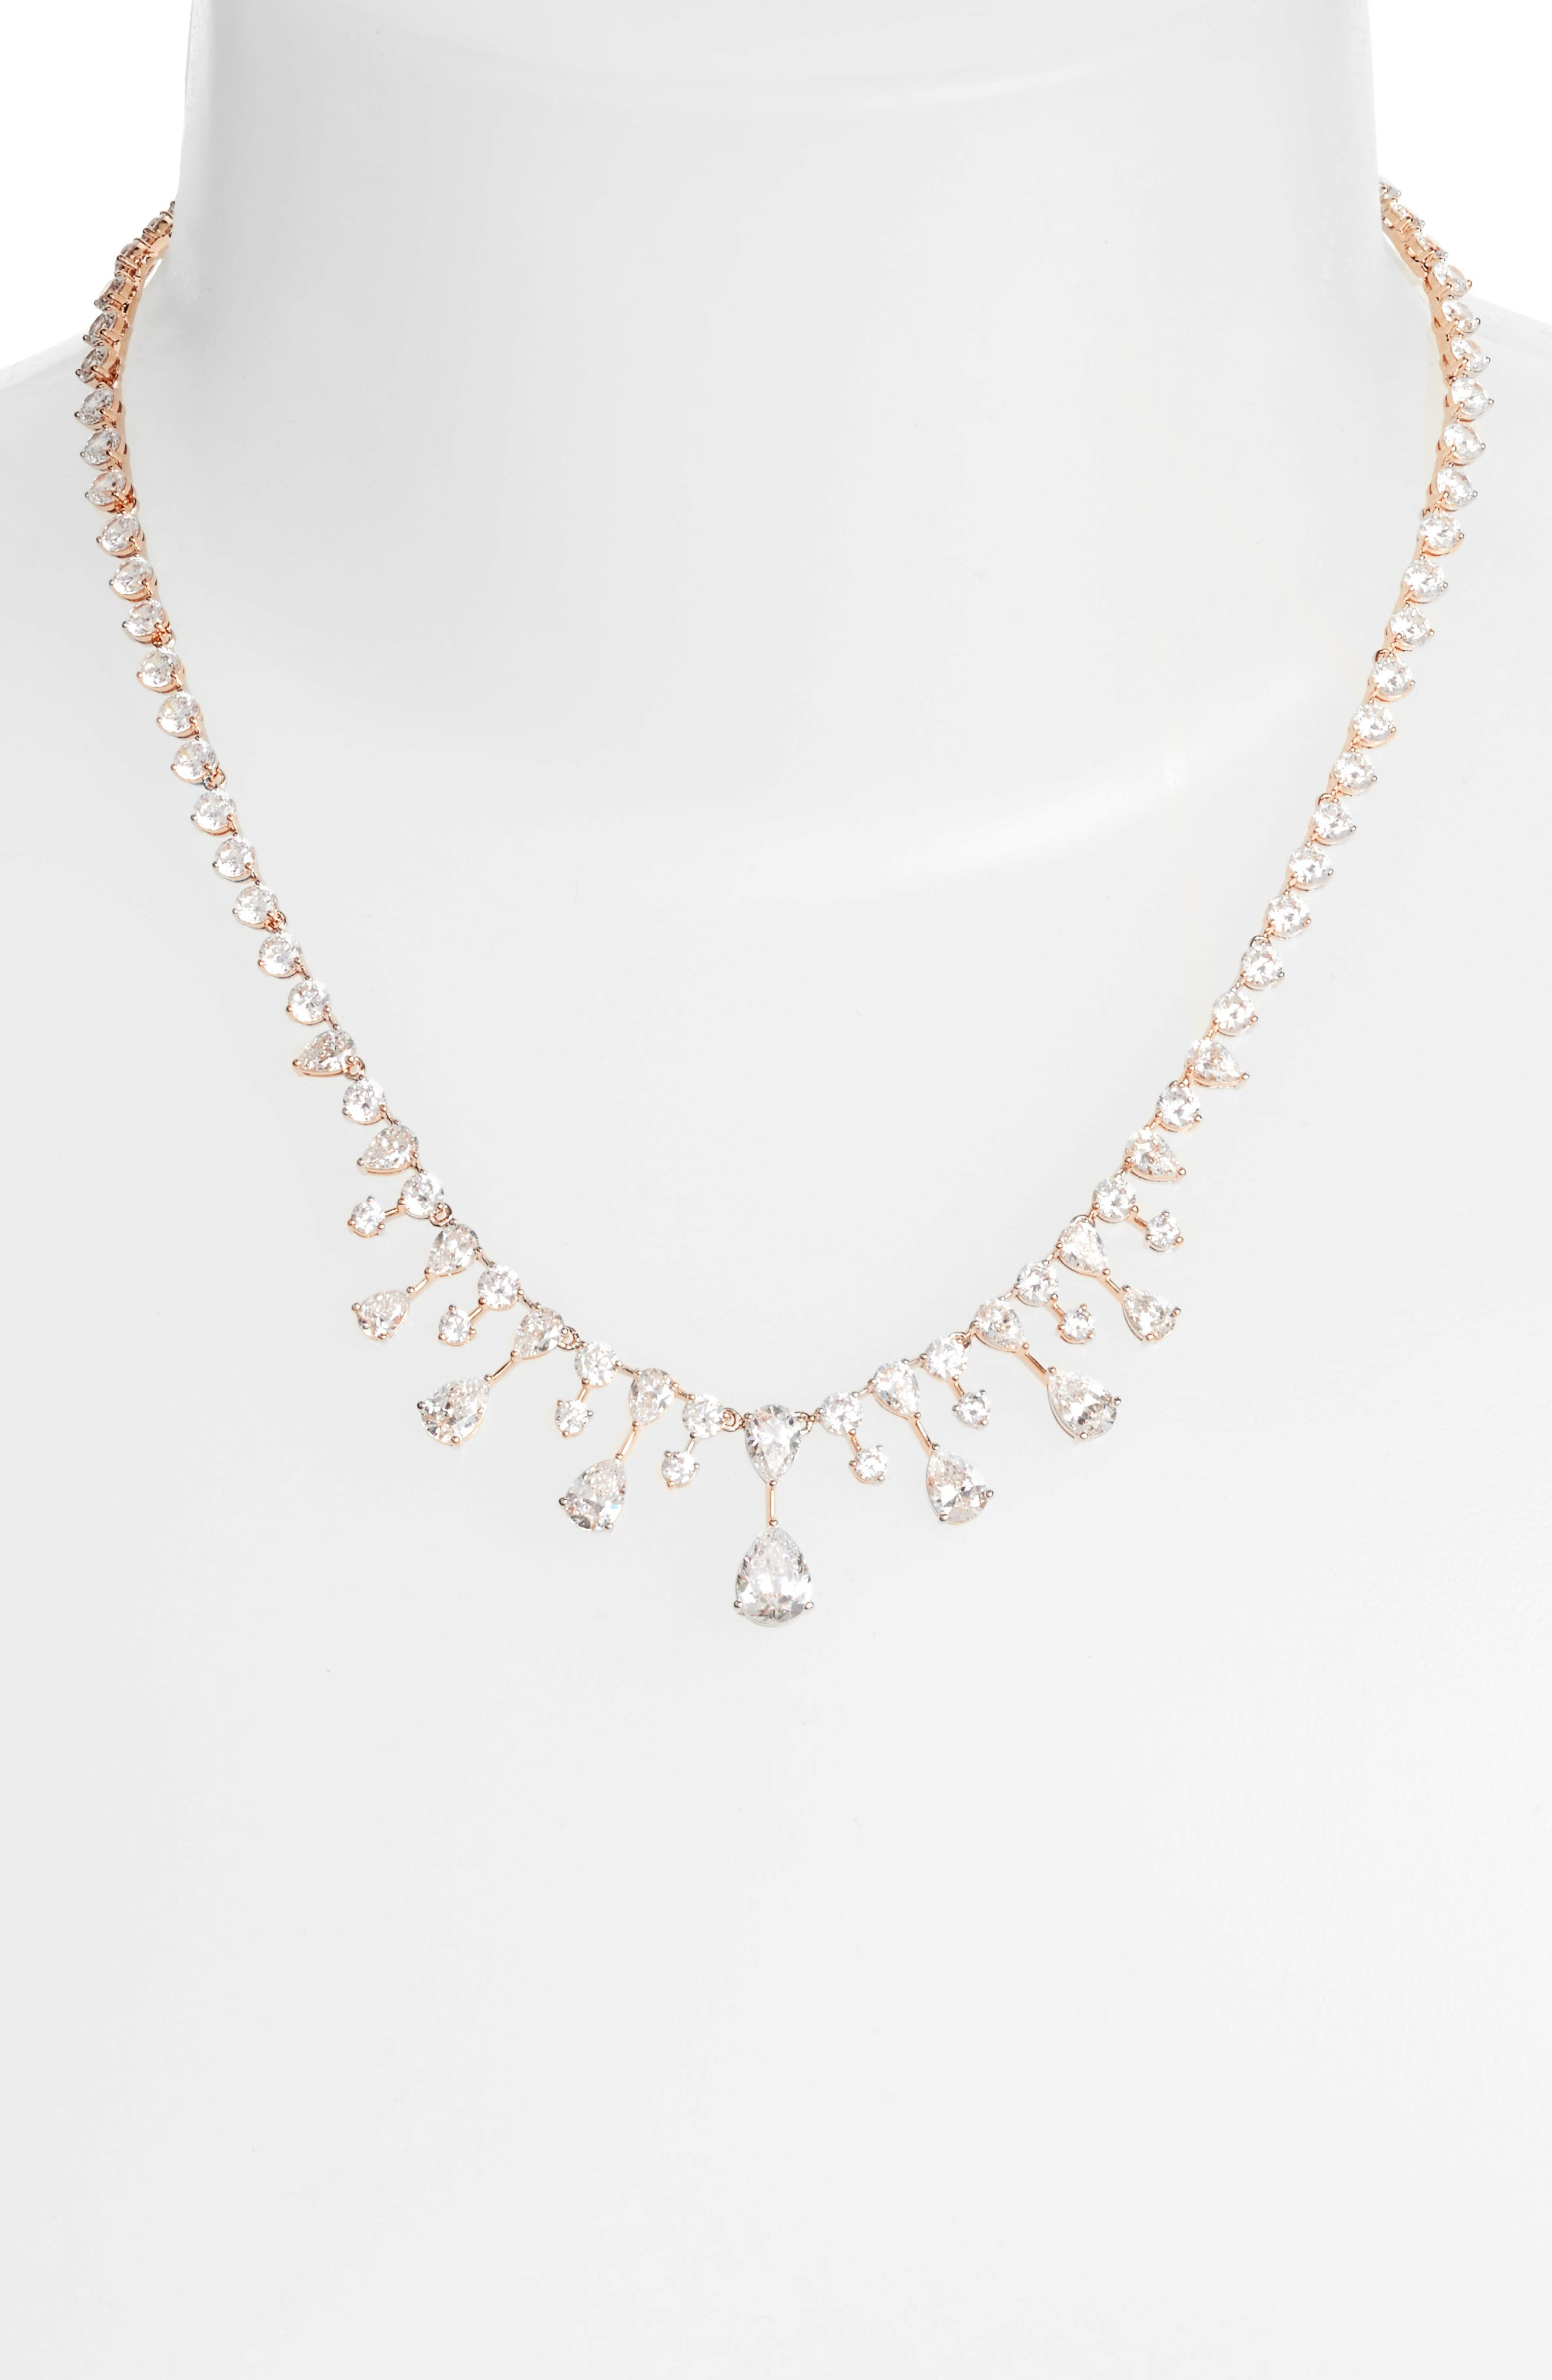 Audrey Crystal Collar Necklace,                             Alternate thumbnail 2, color,                             Rose Gold